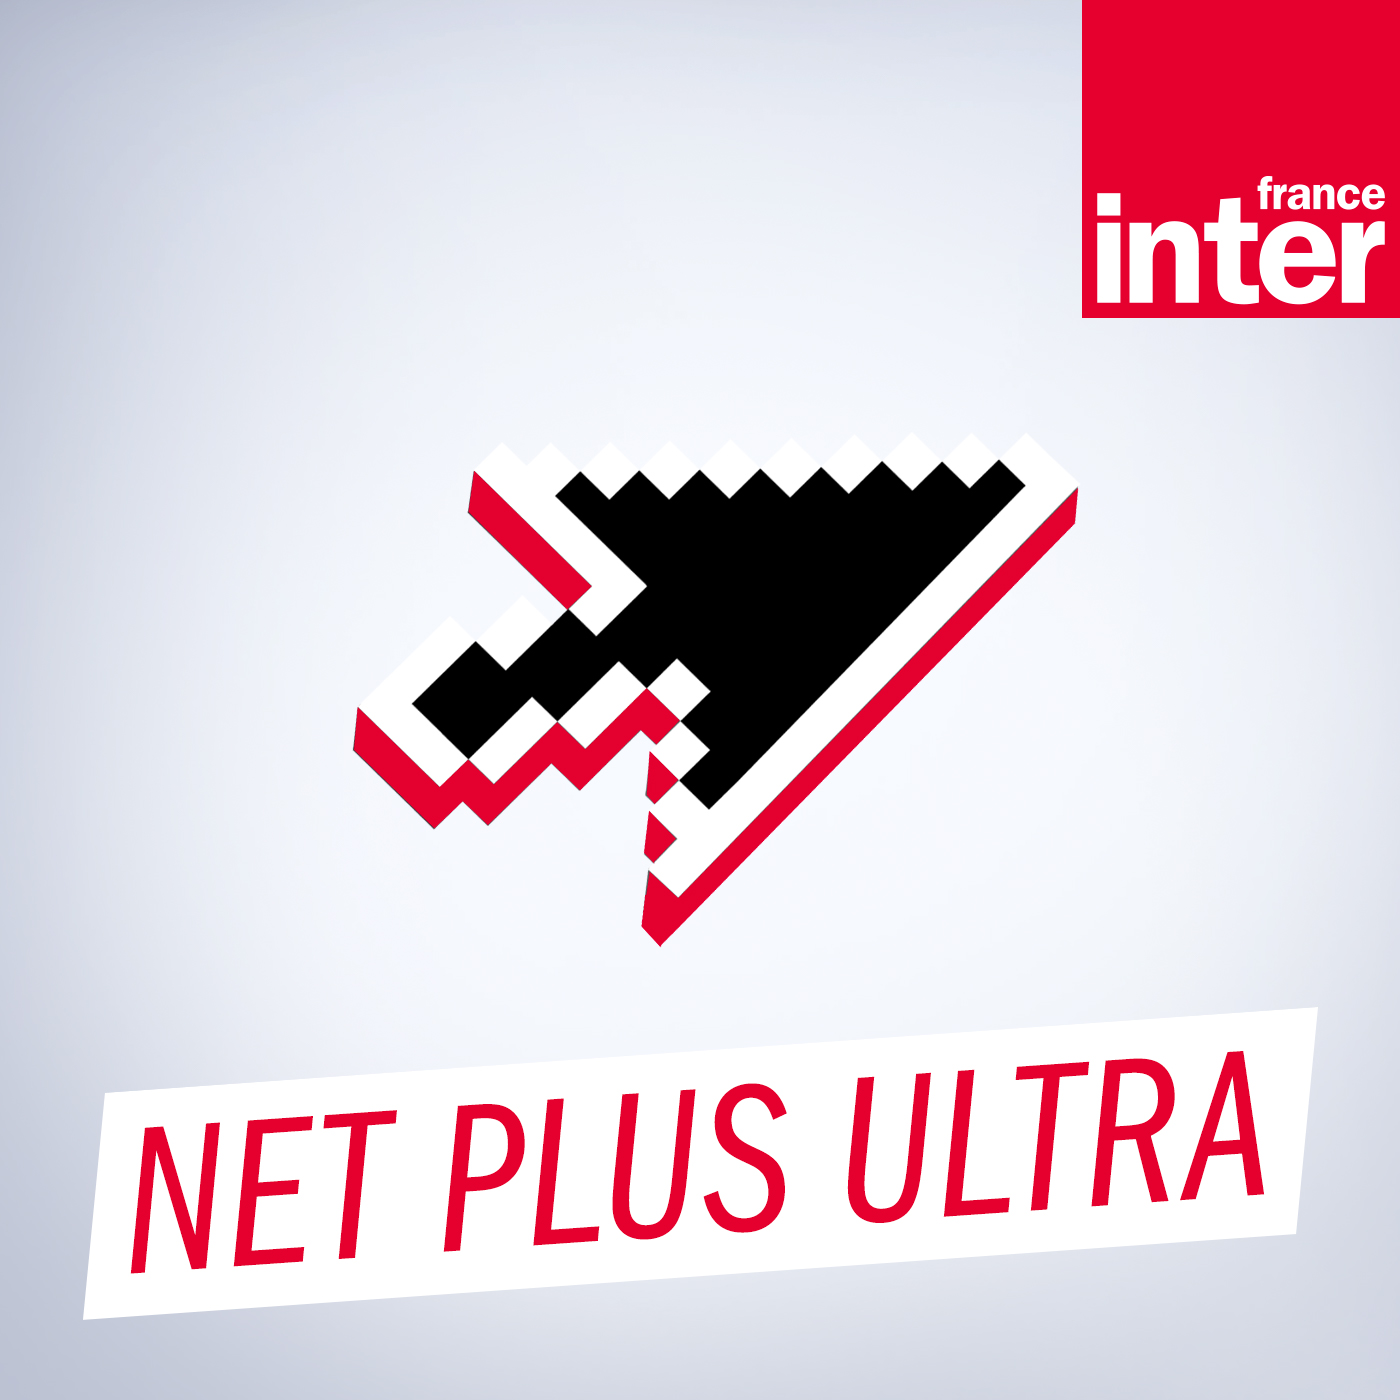 Net plus ultra